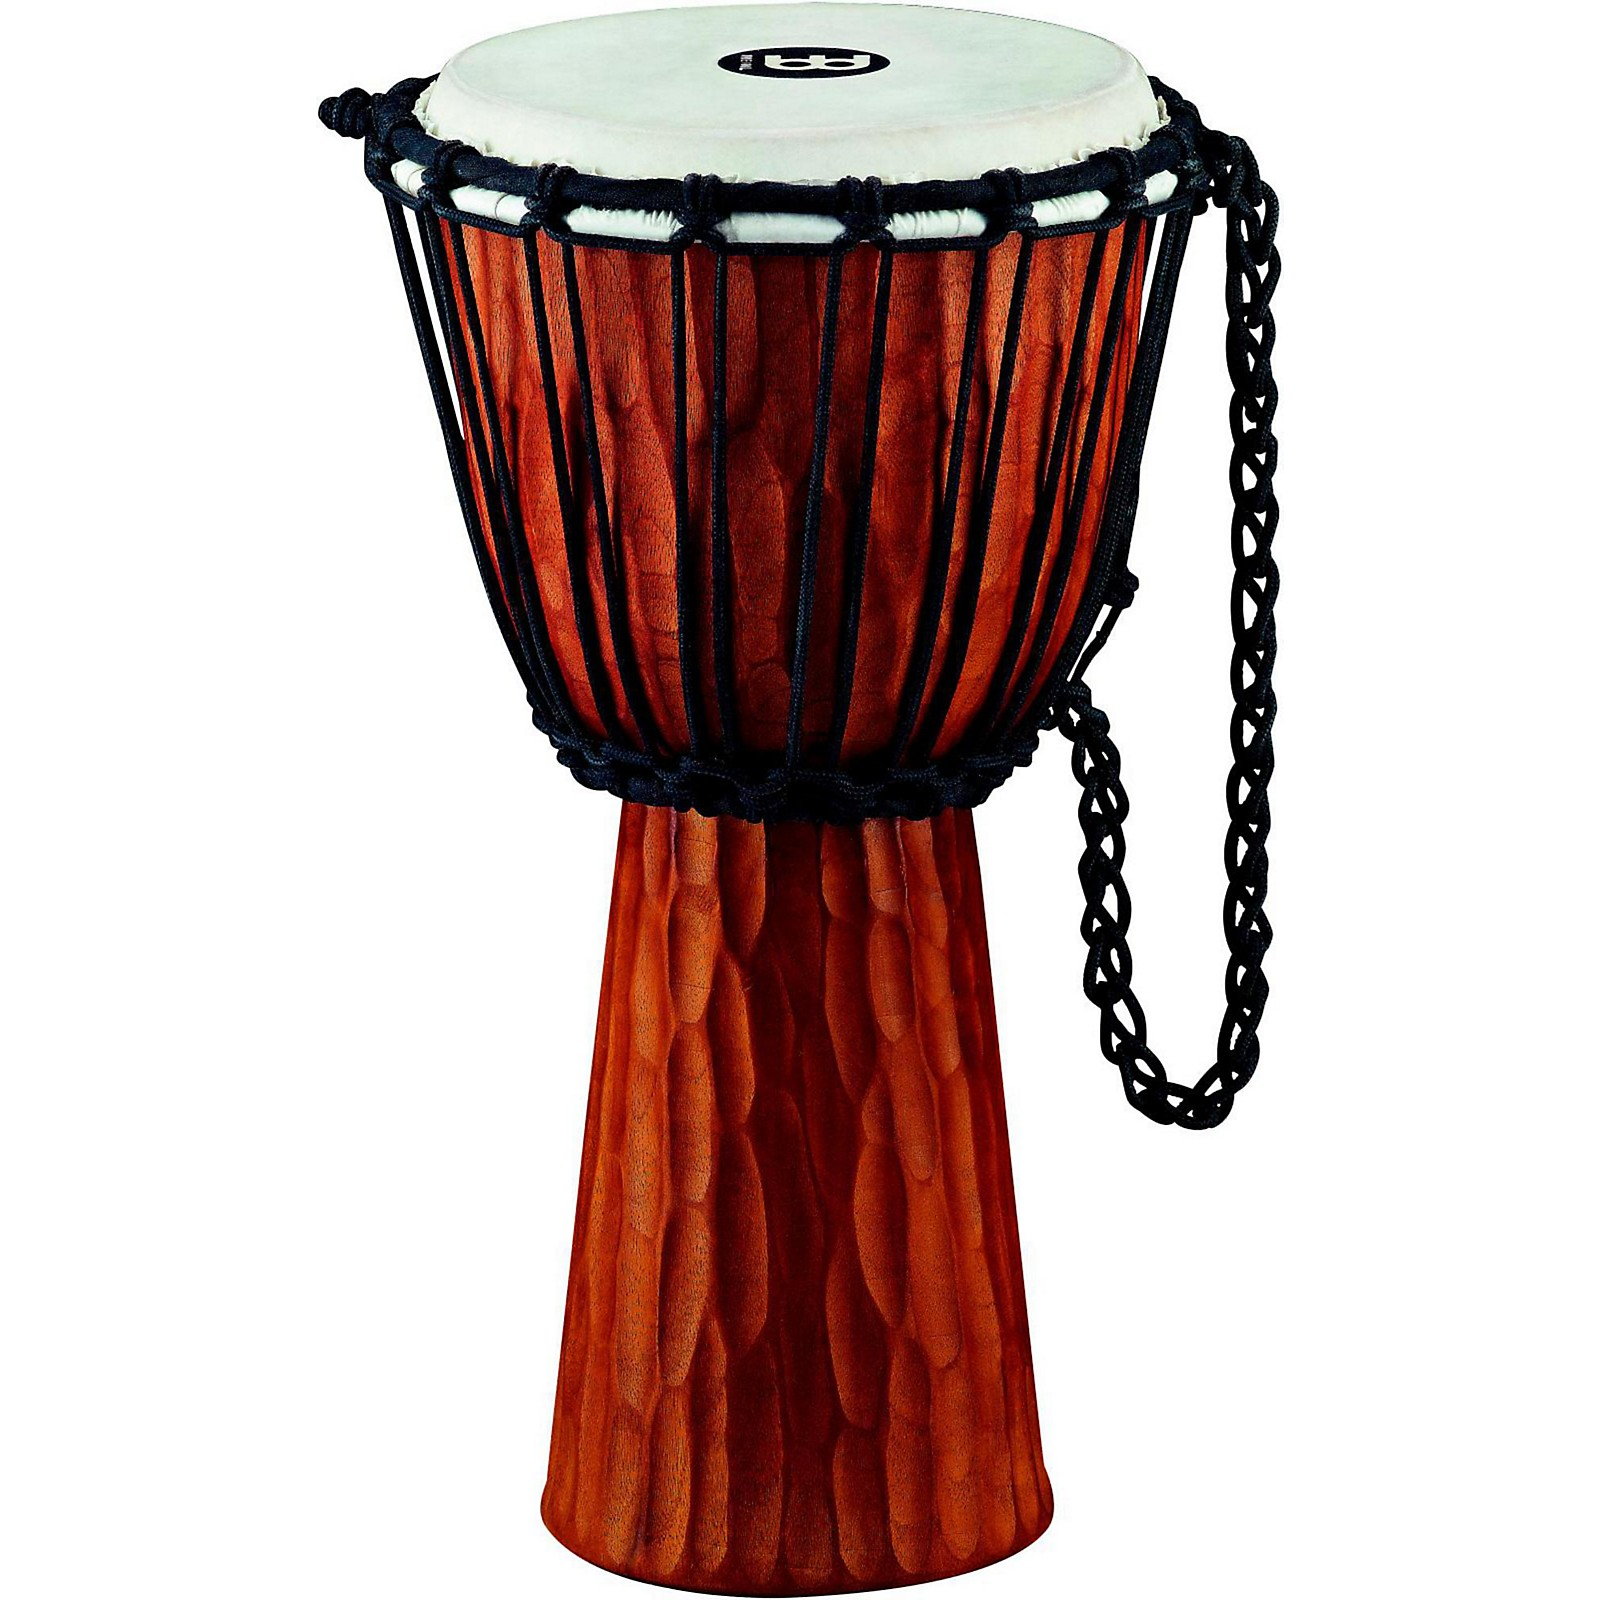 Meinl Headliner Nile Series Rope Tuned Djembe 8 In